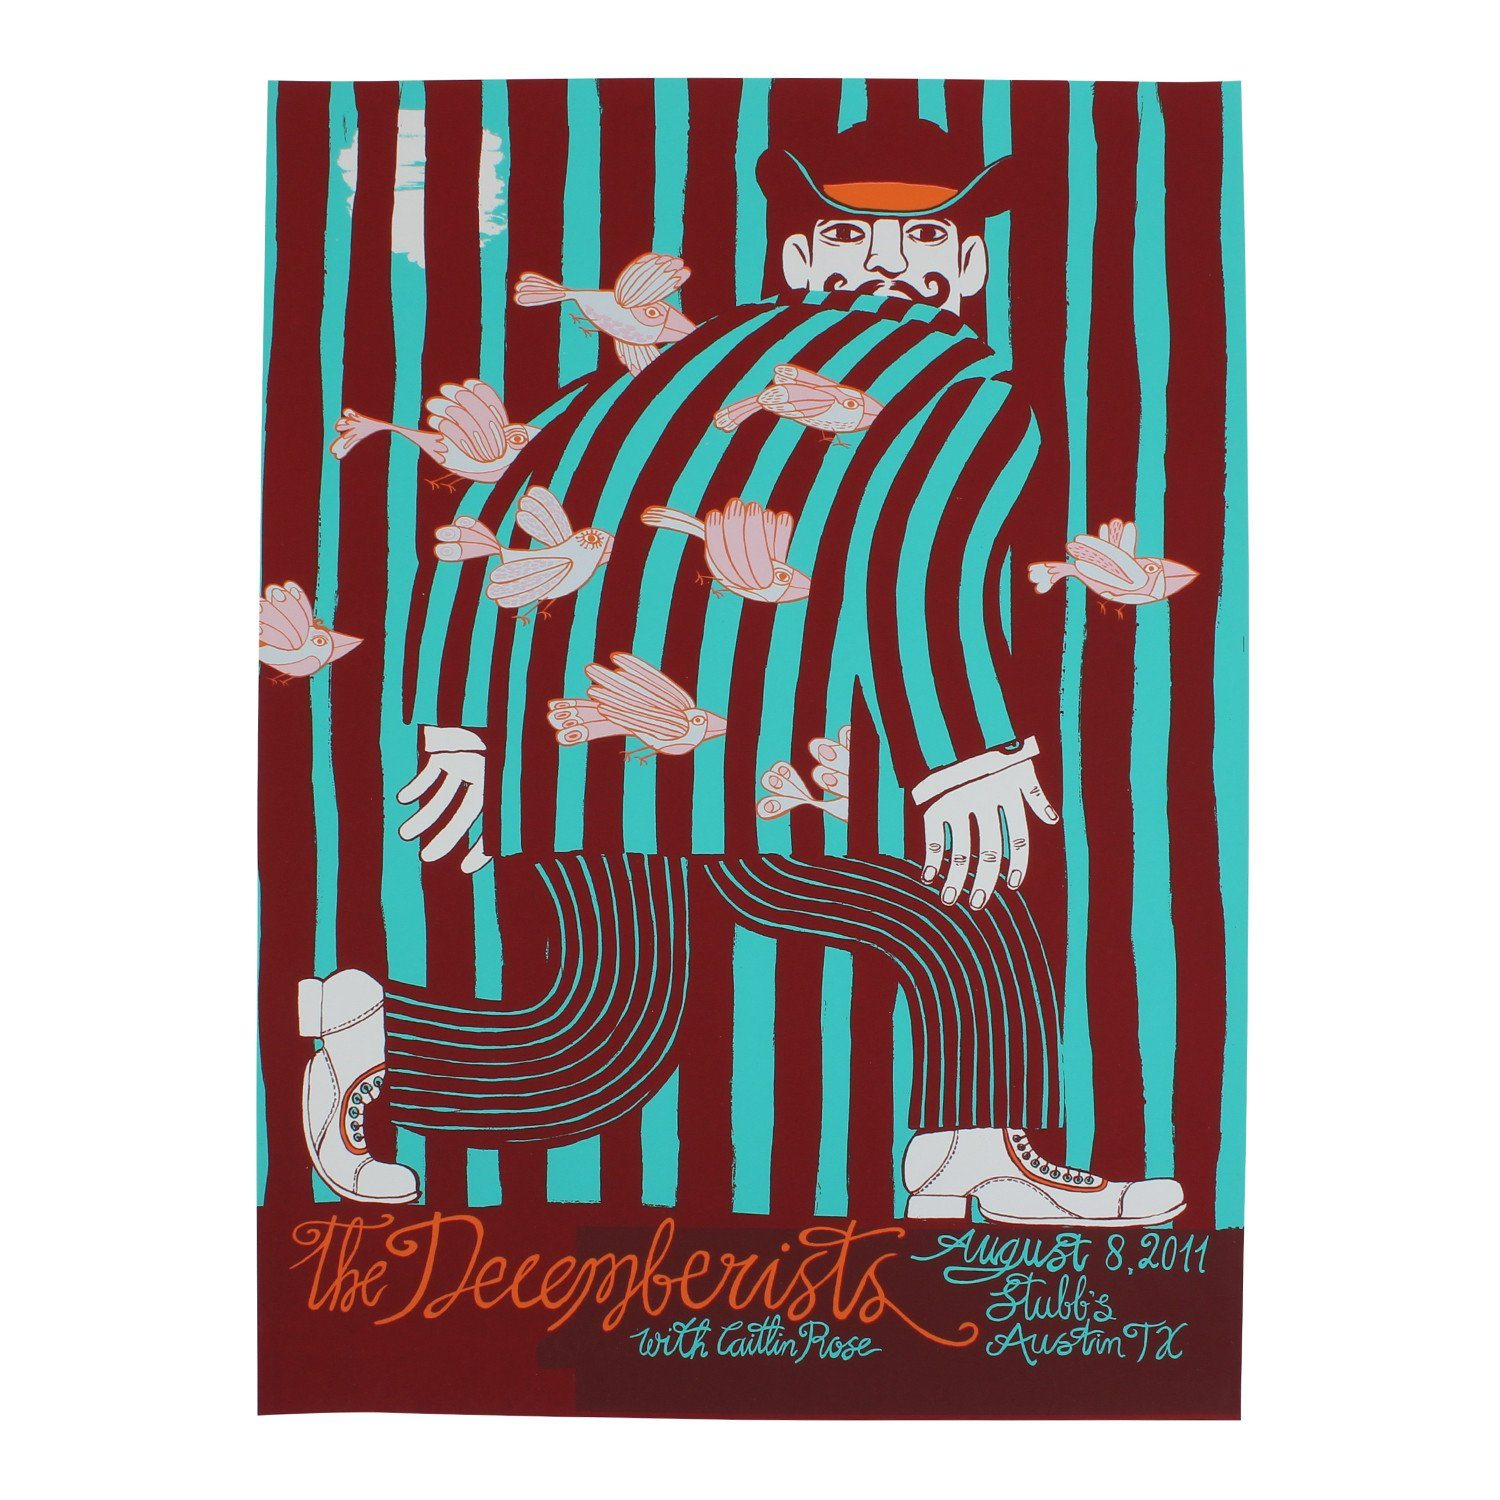 The Decemberists at Stubbs in Austin, TX Aug 8, 2011 Poster - 18